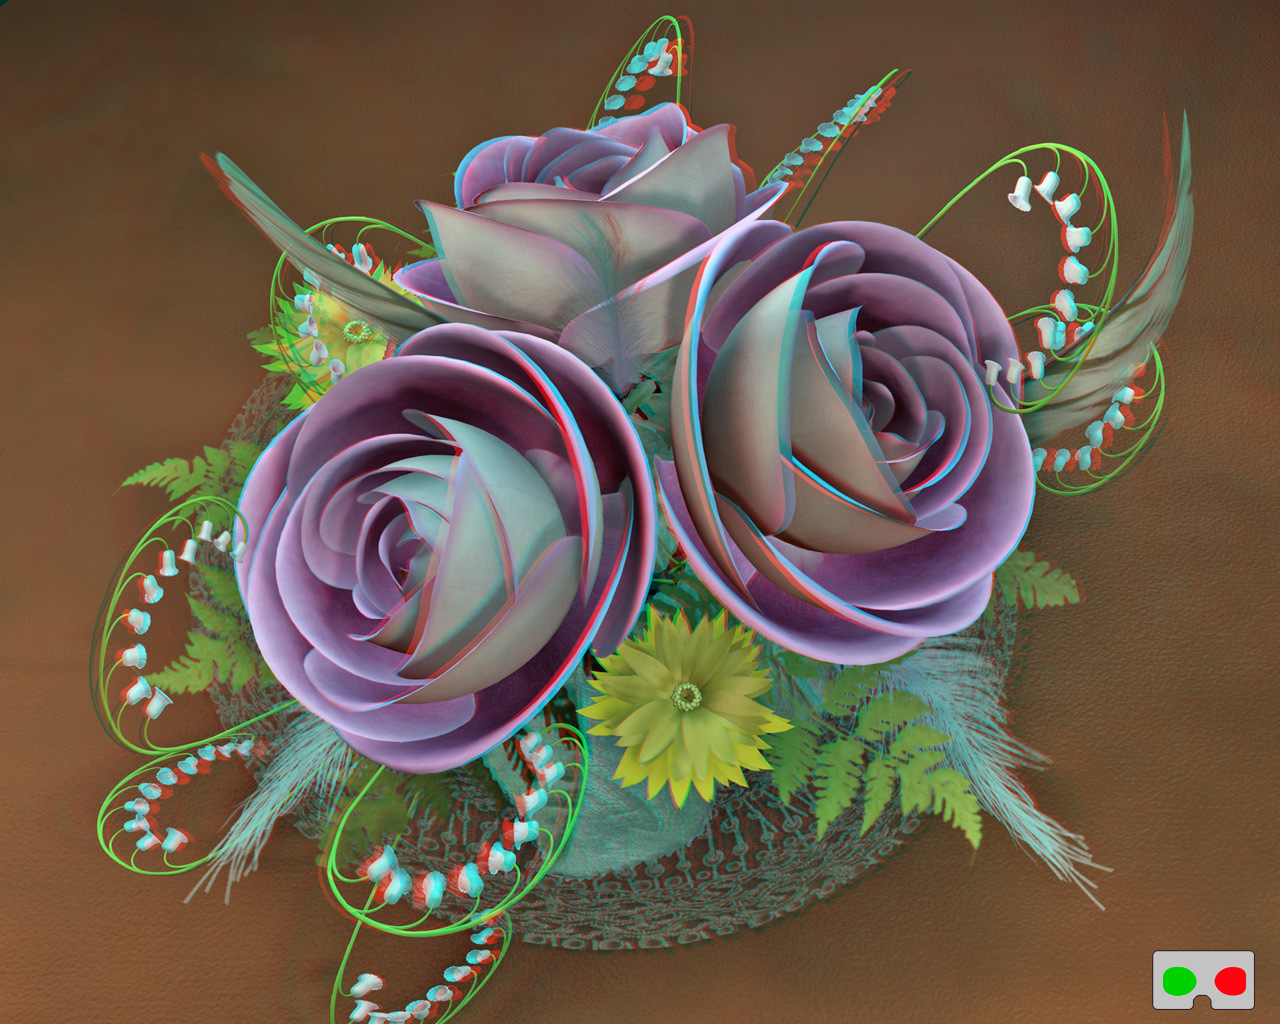 3D Rose Bouquet by ronjonk